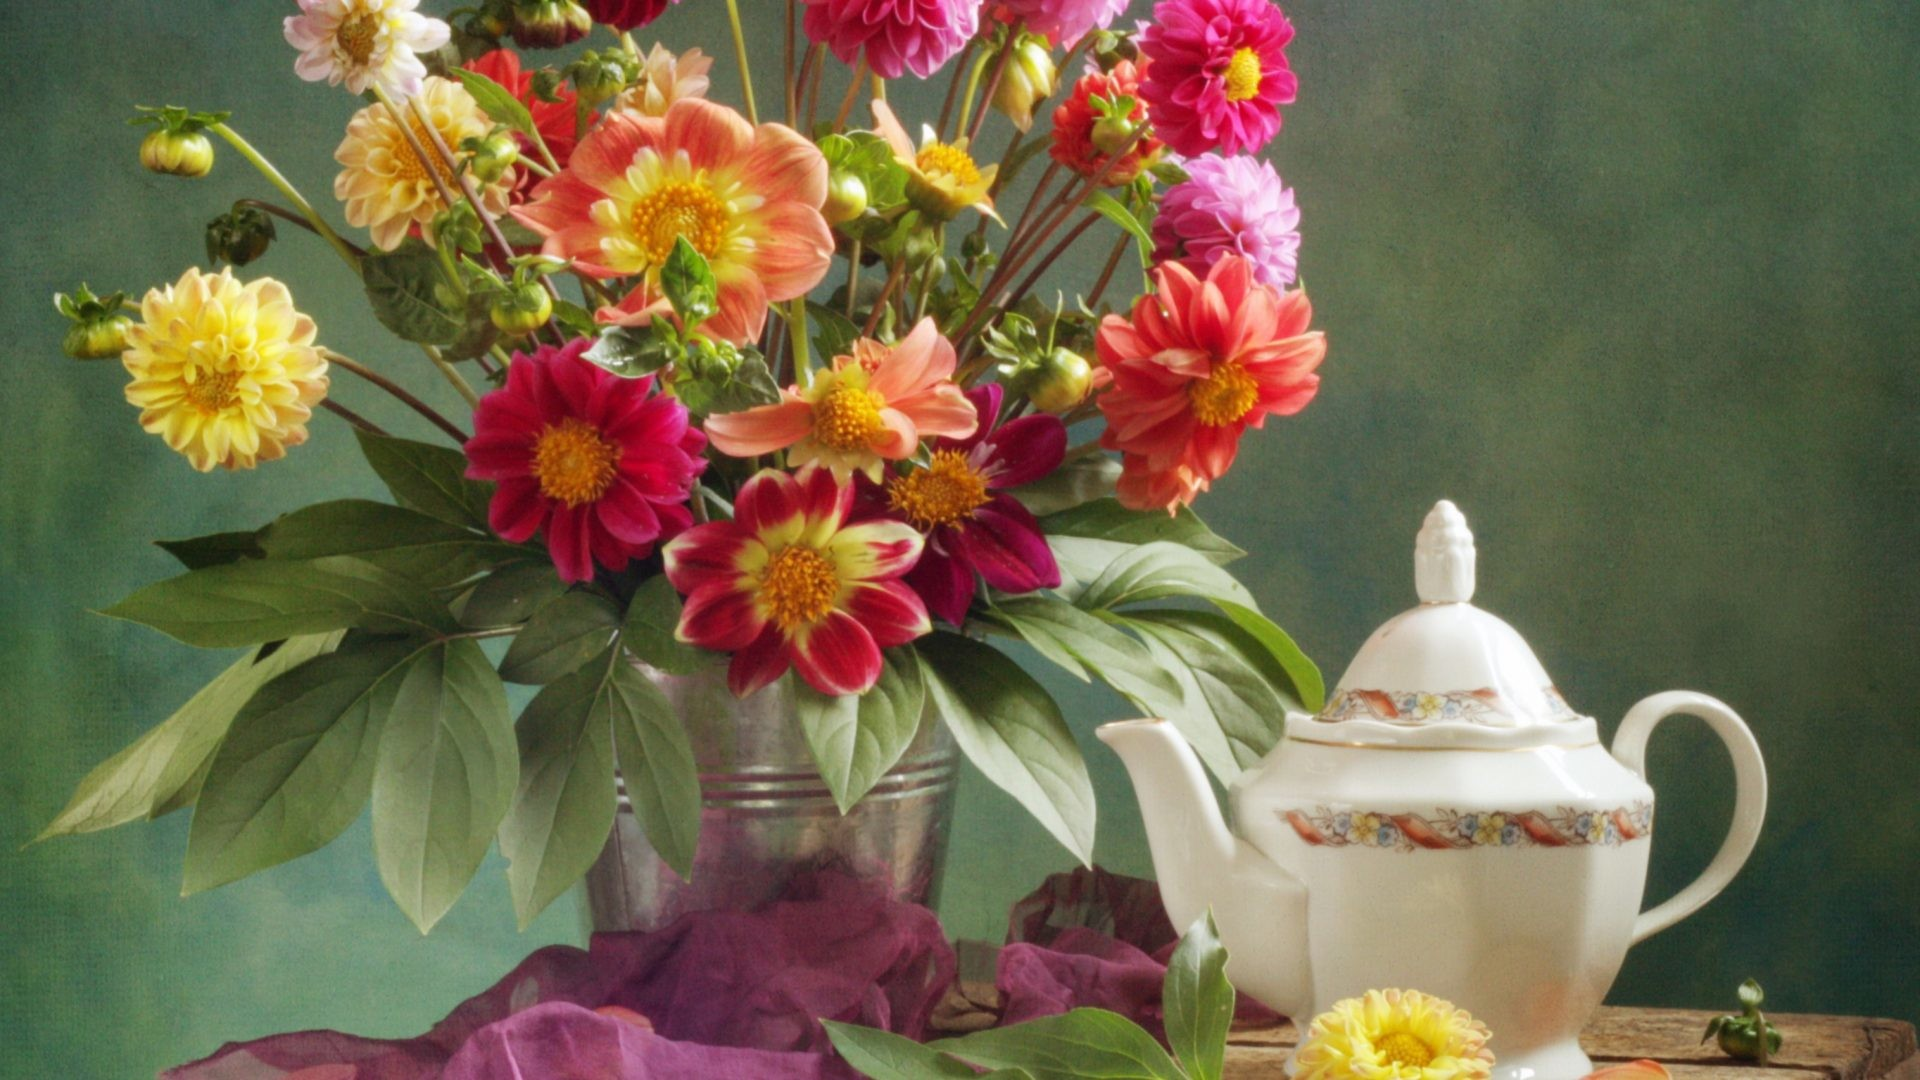 1920x1080 Still Cuuo Flower Floral Life Teapot Wallpaper In Hd Download Detail